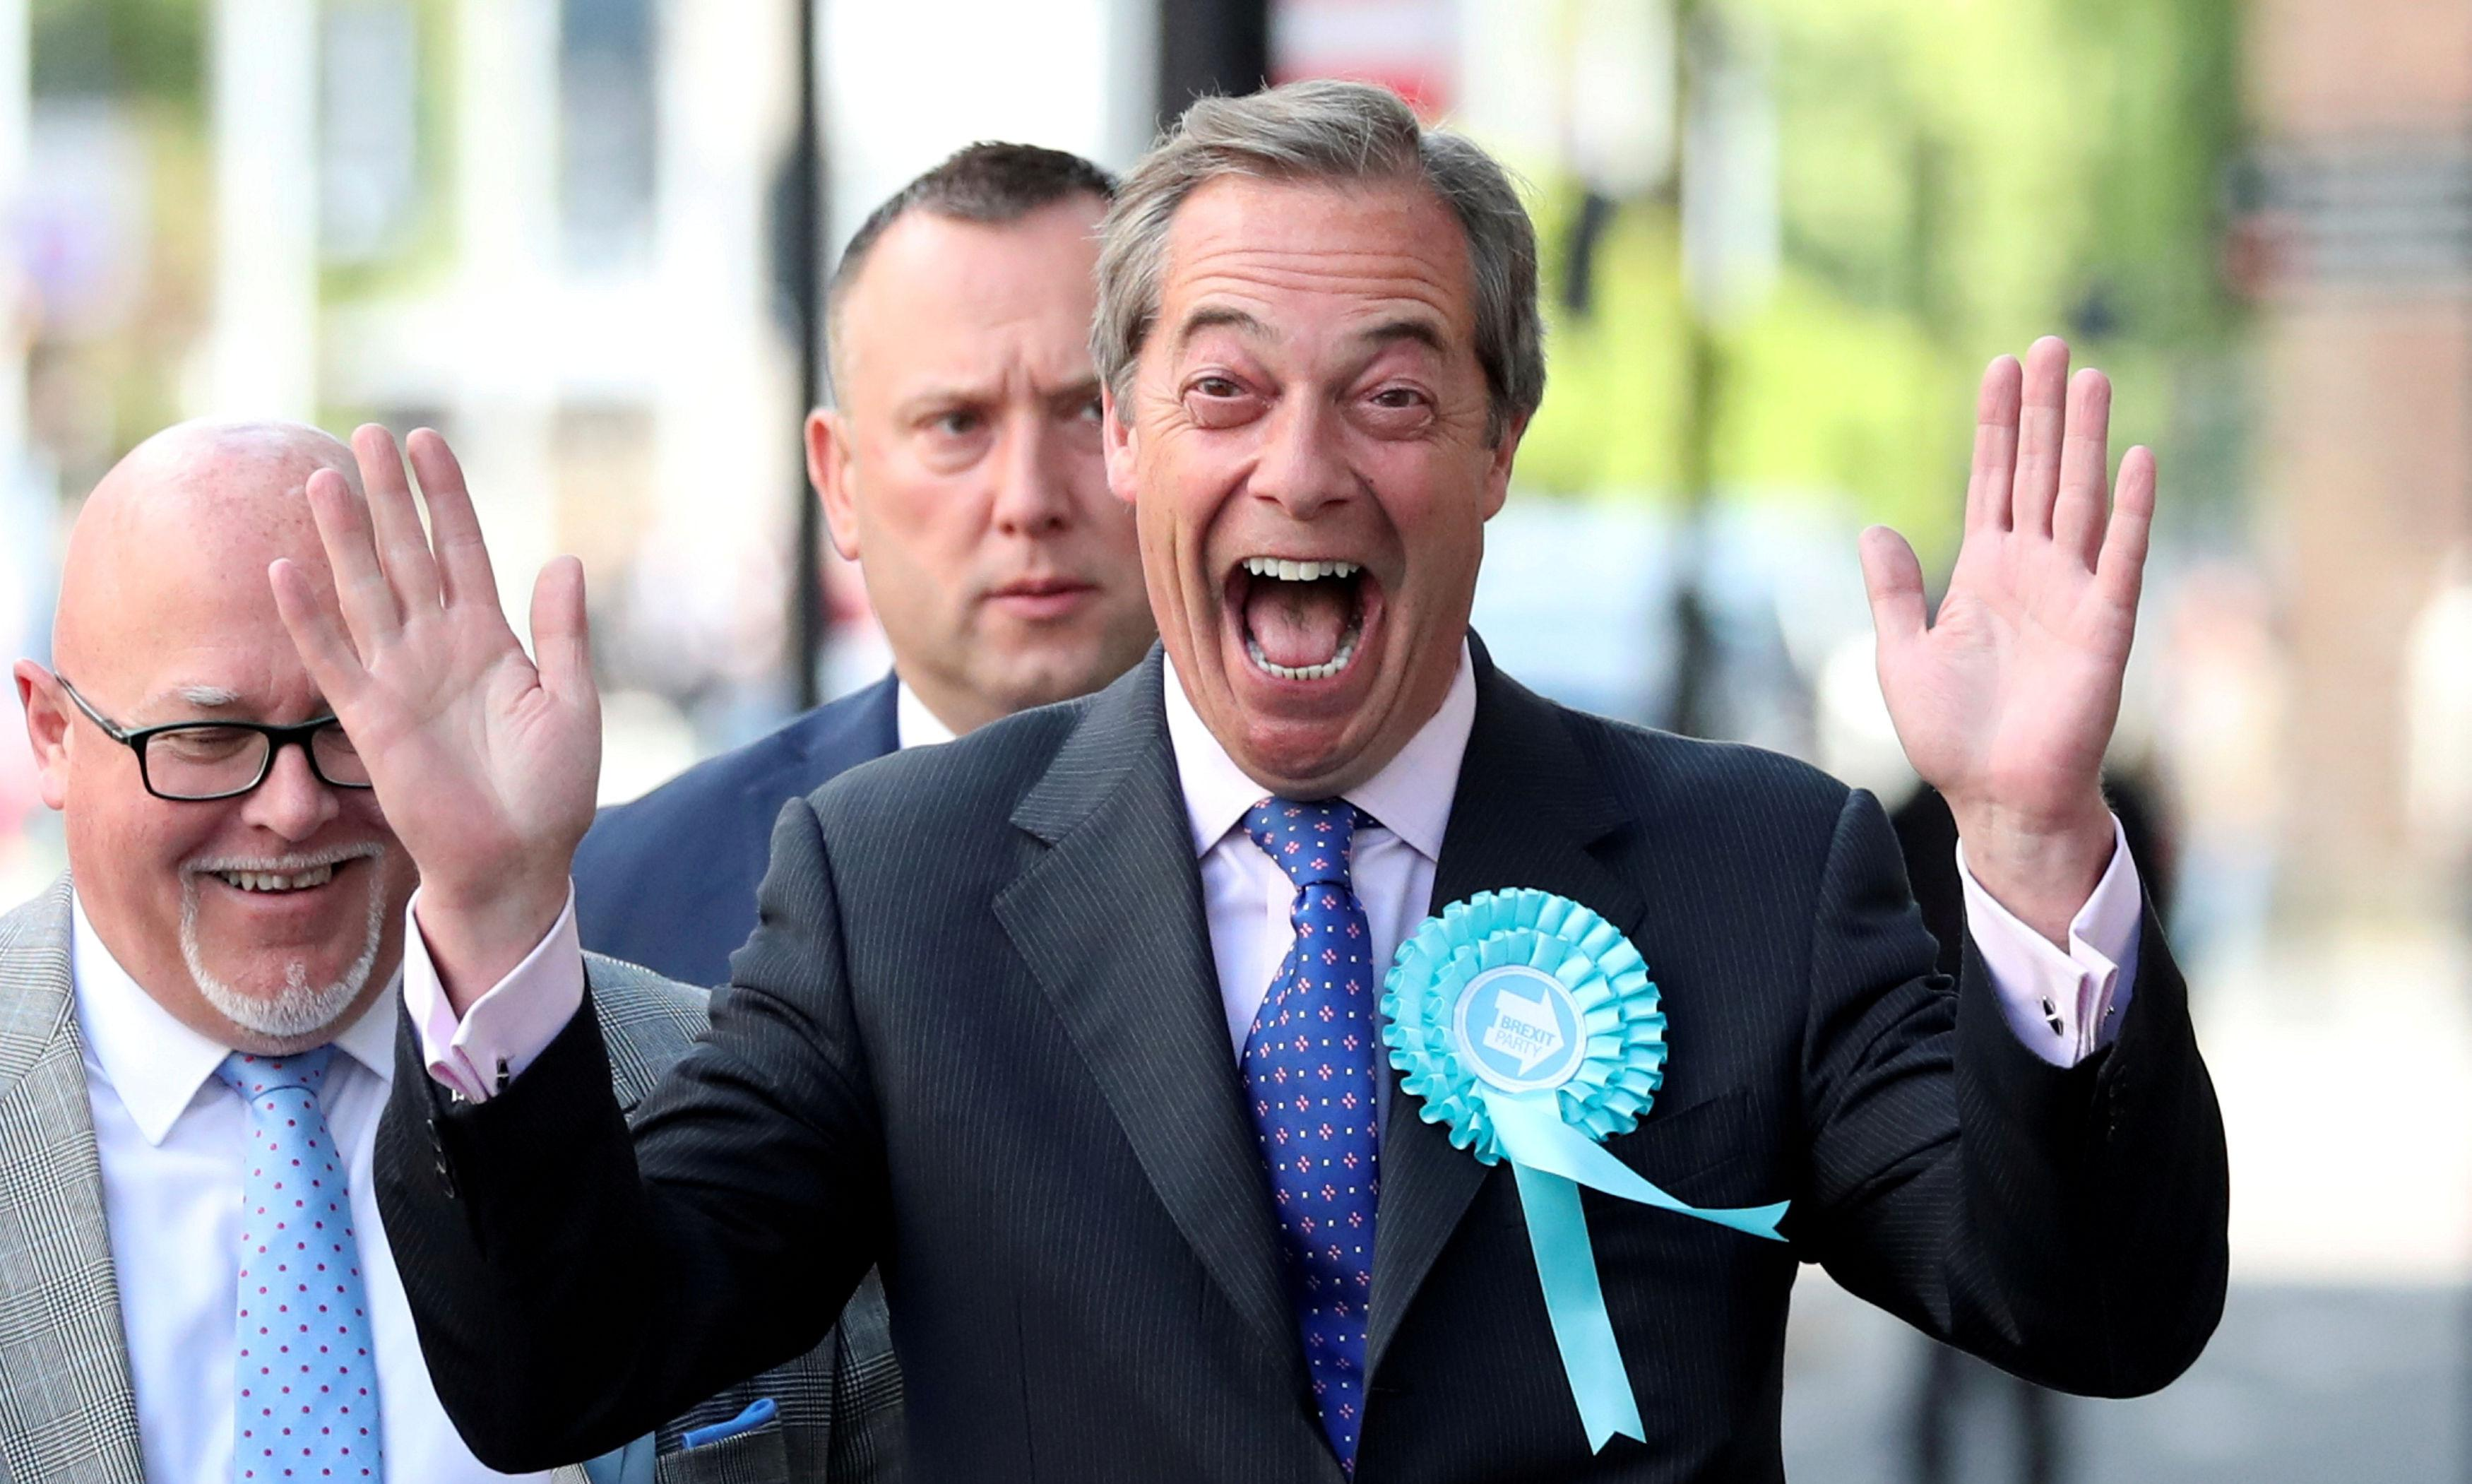 Nigel Farage shelters on campaign bus to avoid milkshake attack